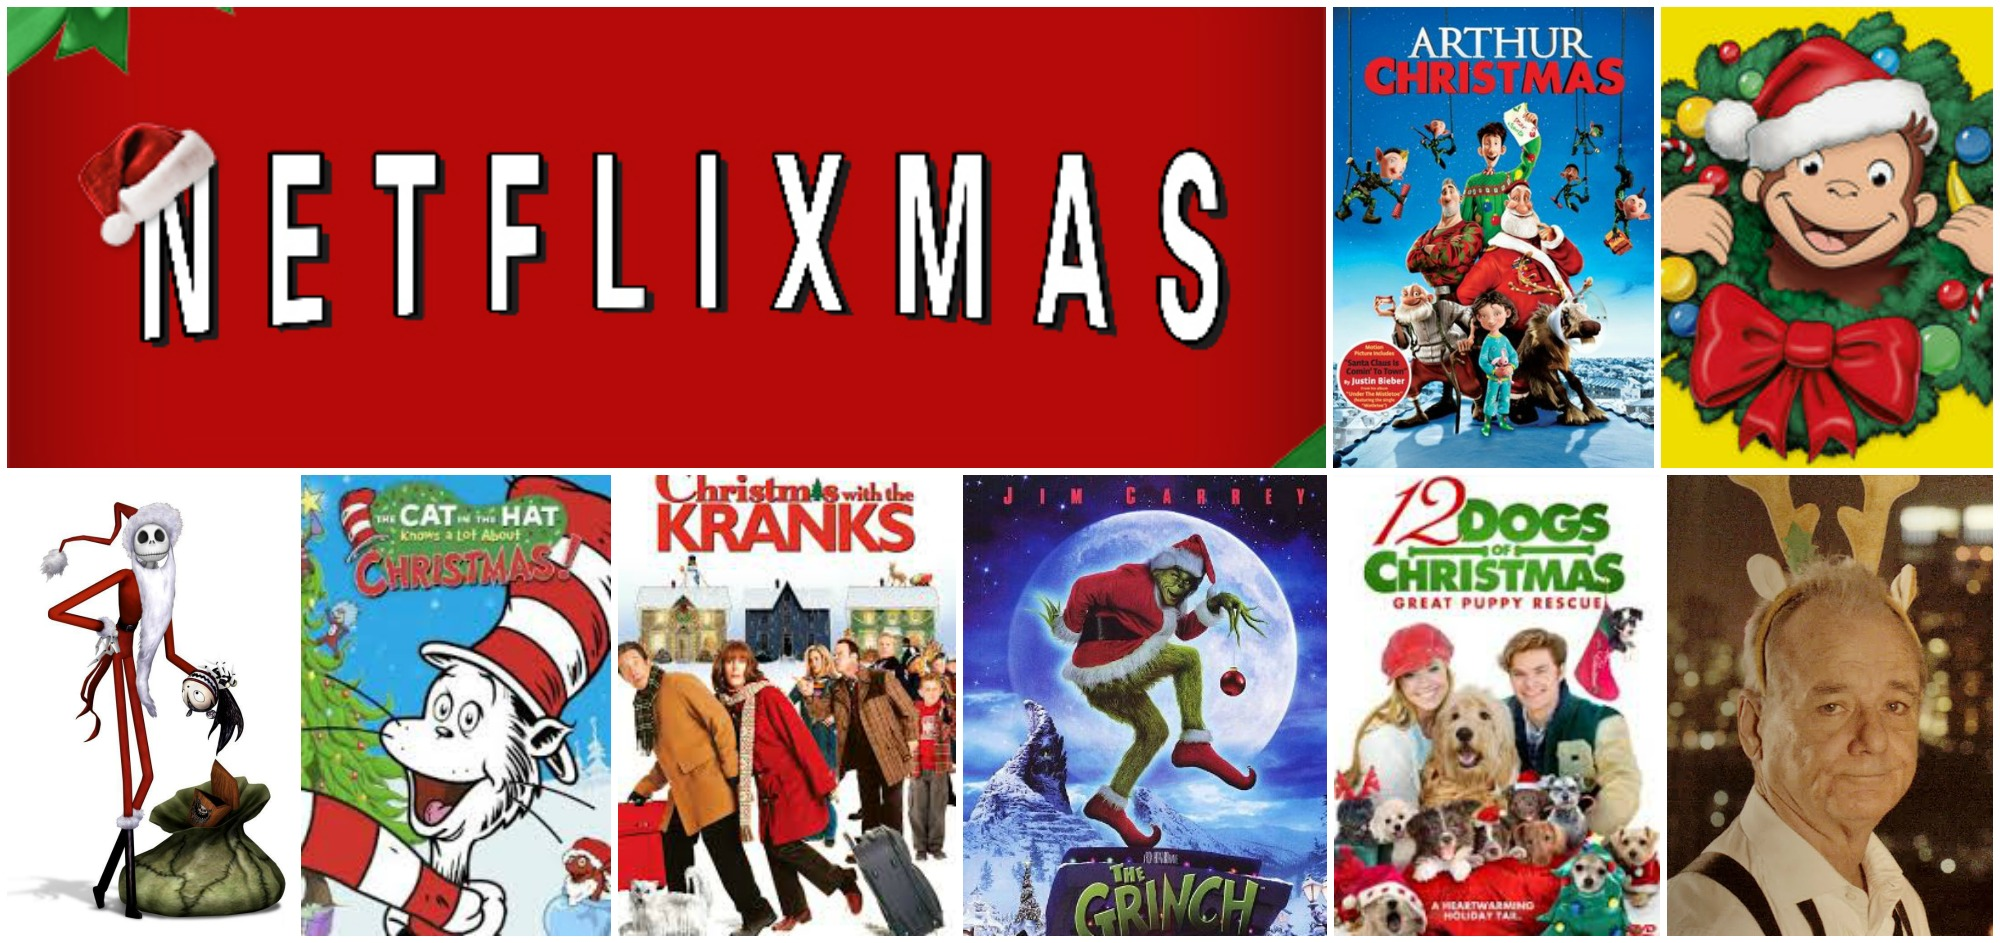 Merry Netflixmas! The Best Christmas Shows On Netflix Canada This Year